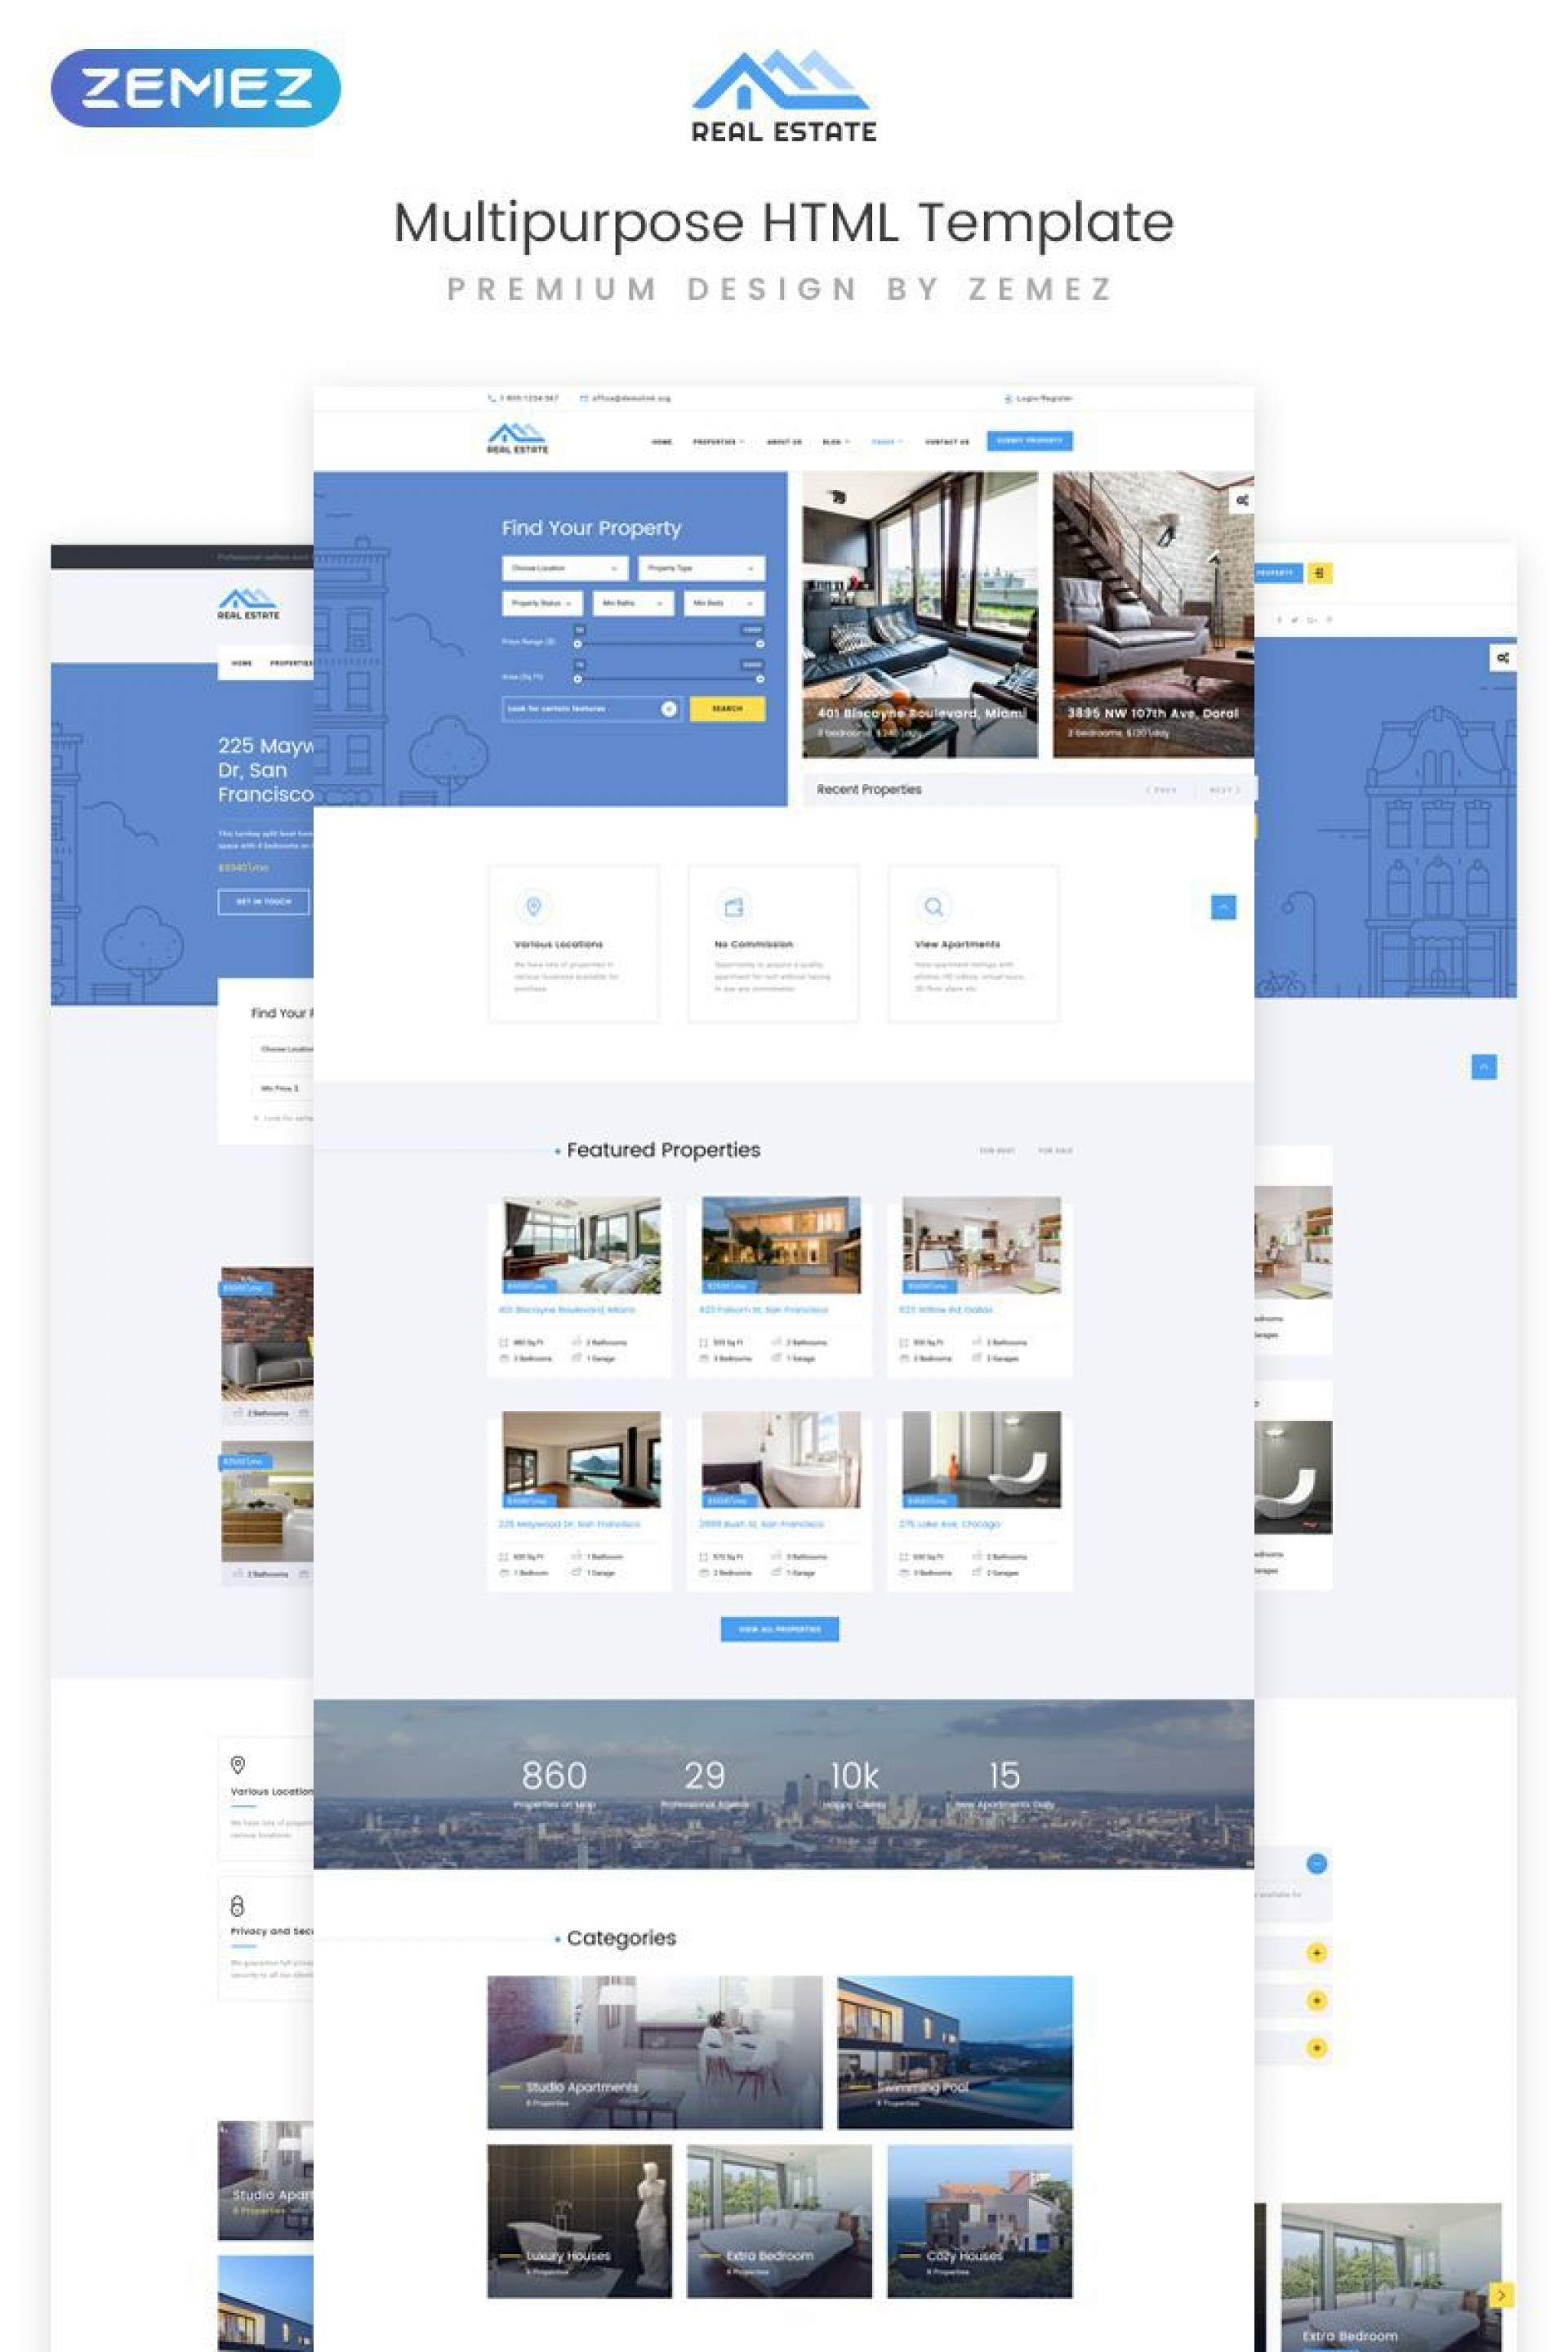 000 Unusual Real Estate Website Template Idea  Templates Free Download Bootstrap 4 Listing Wordpres1920